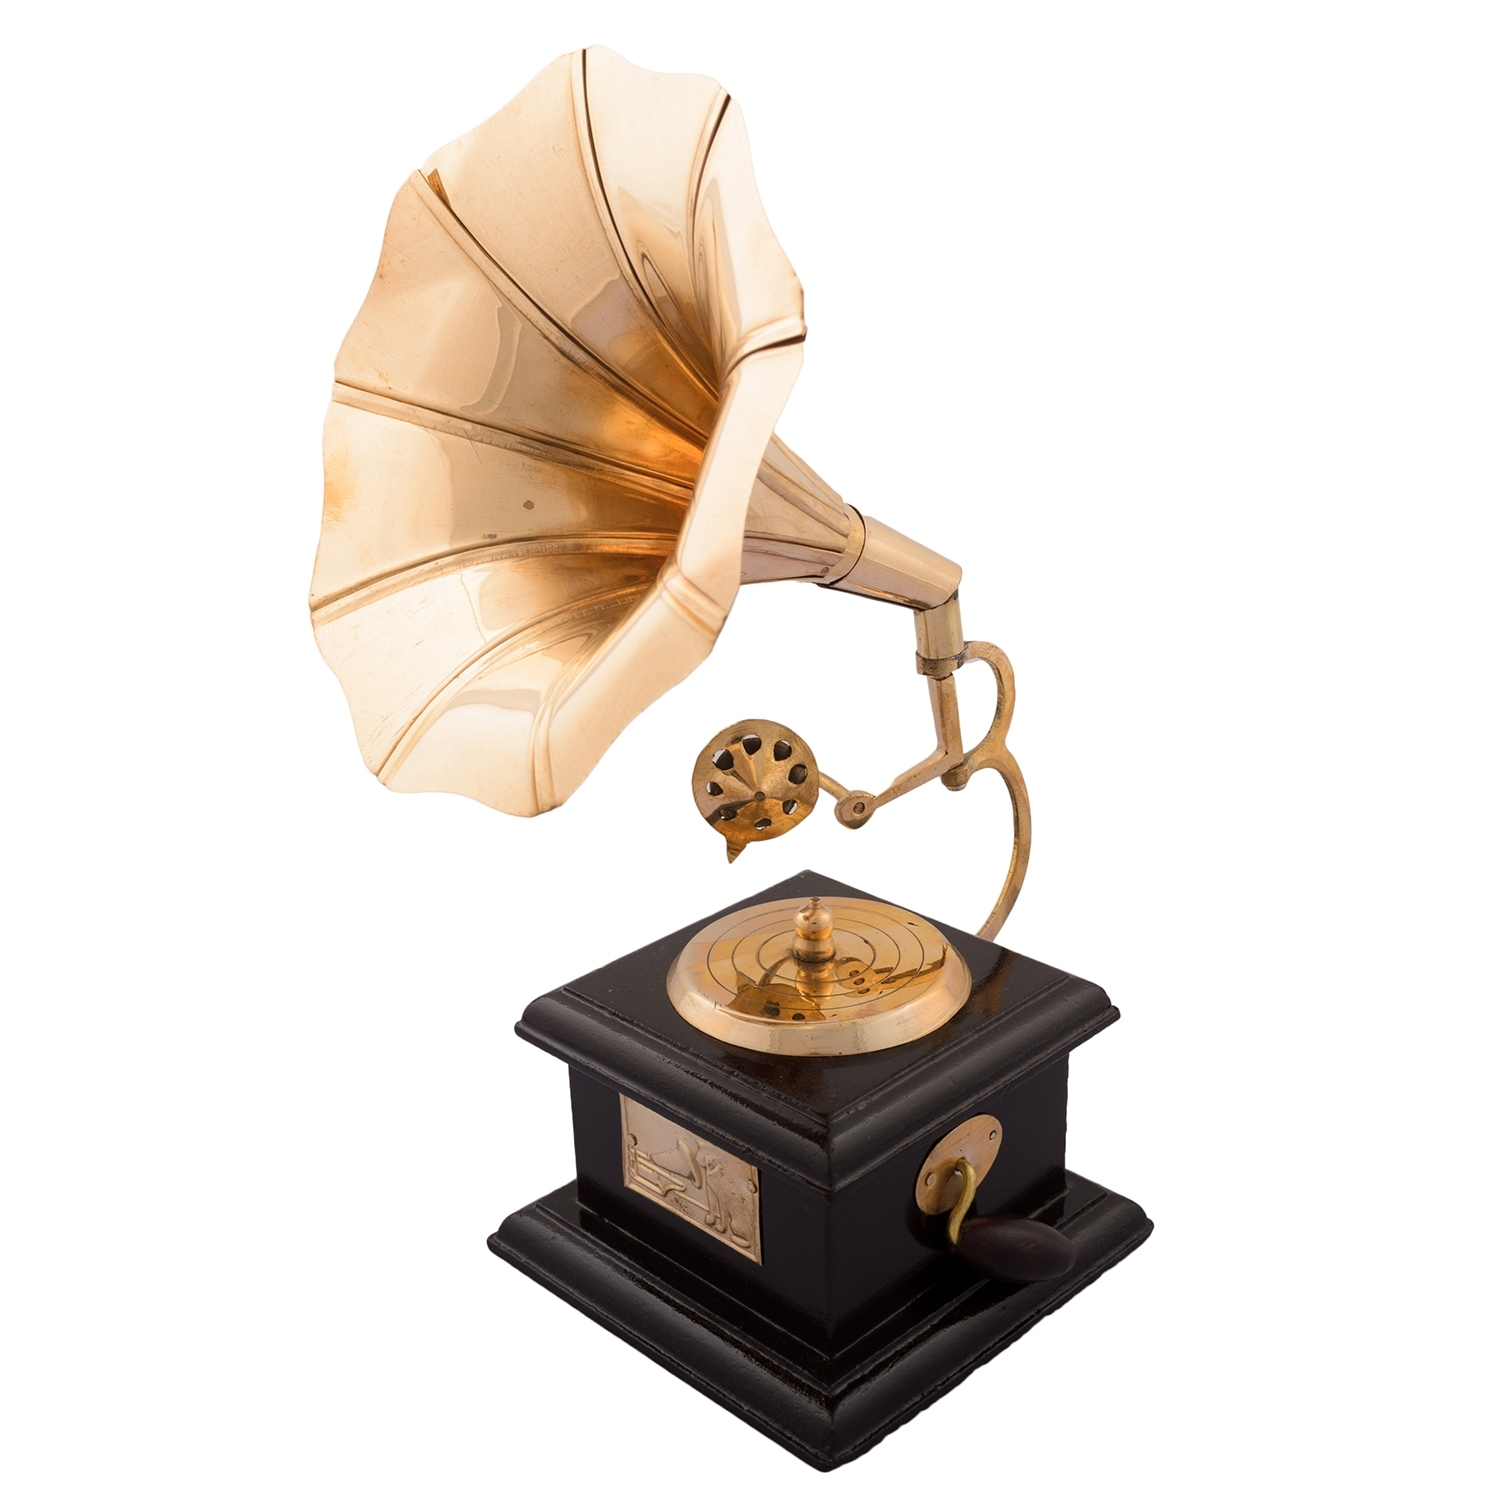 Brass Antique Music Decorative Gramophone Showpiece Indian Home Decor